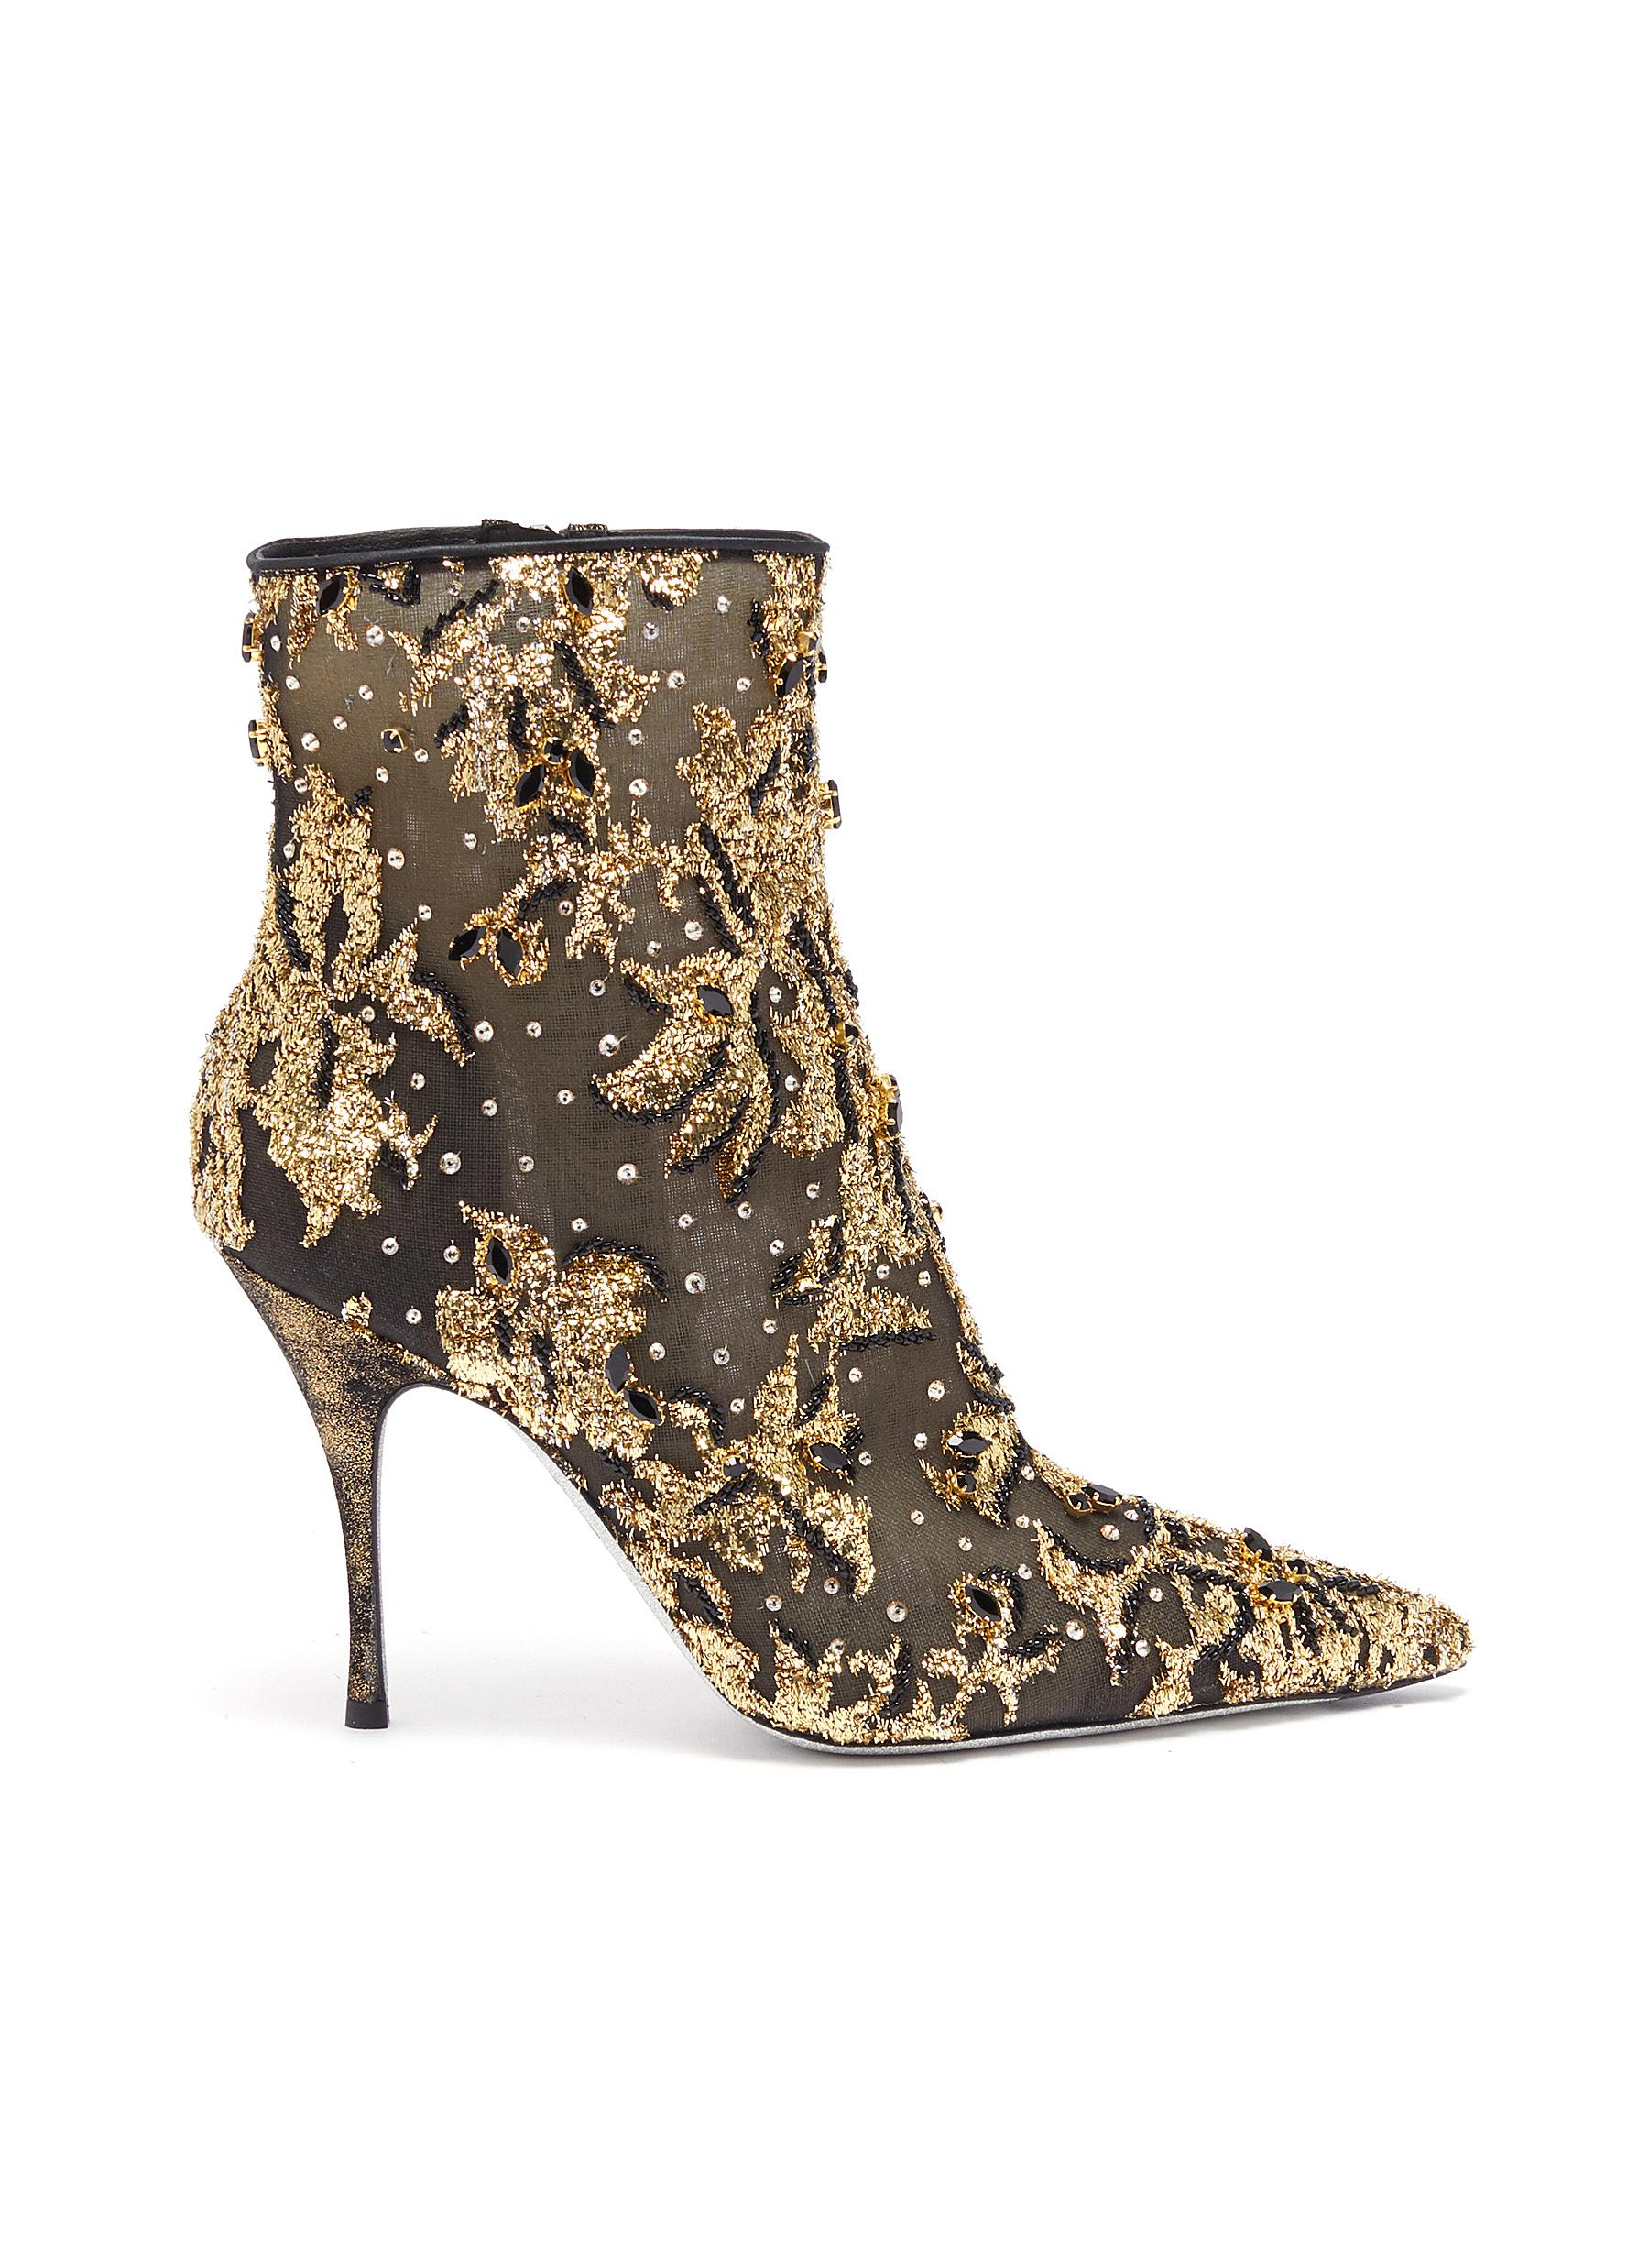 Lurexa embellished tulle ankle boots by René Caovilla